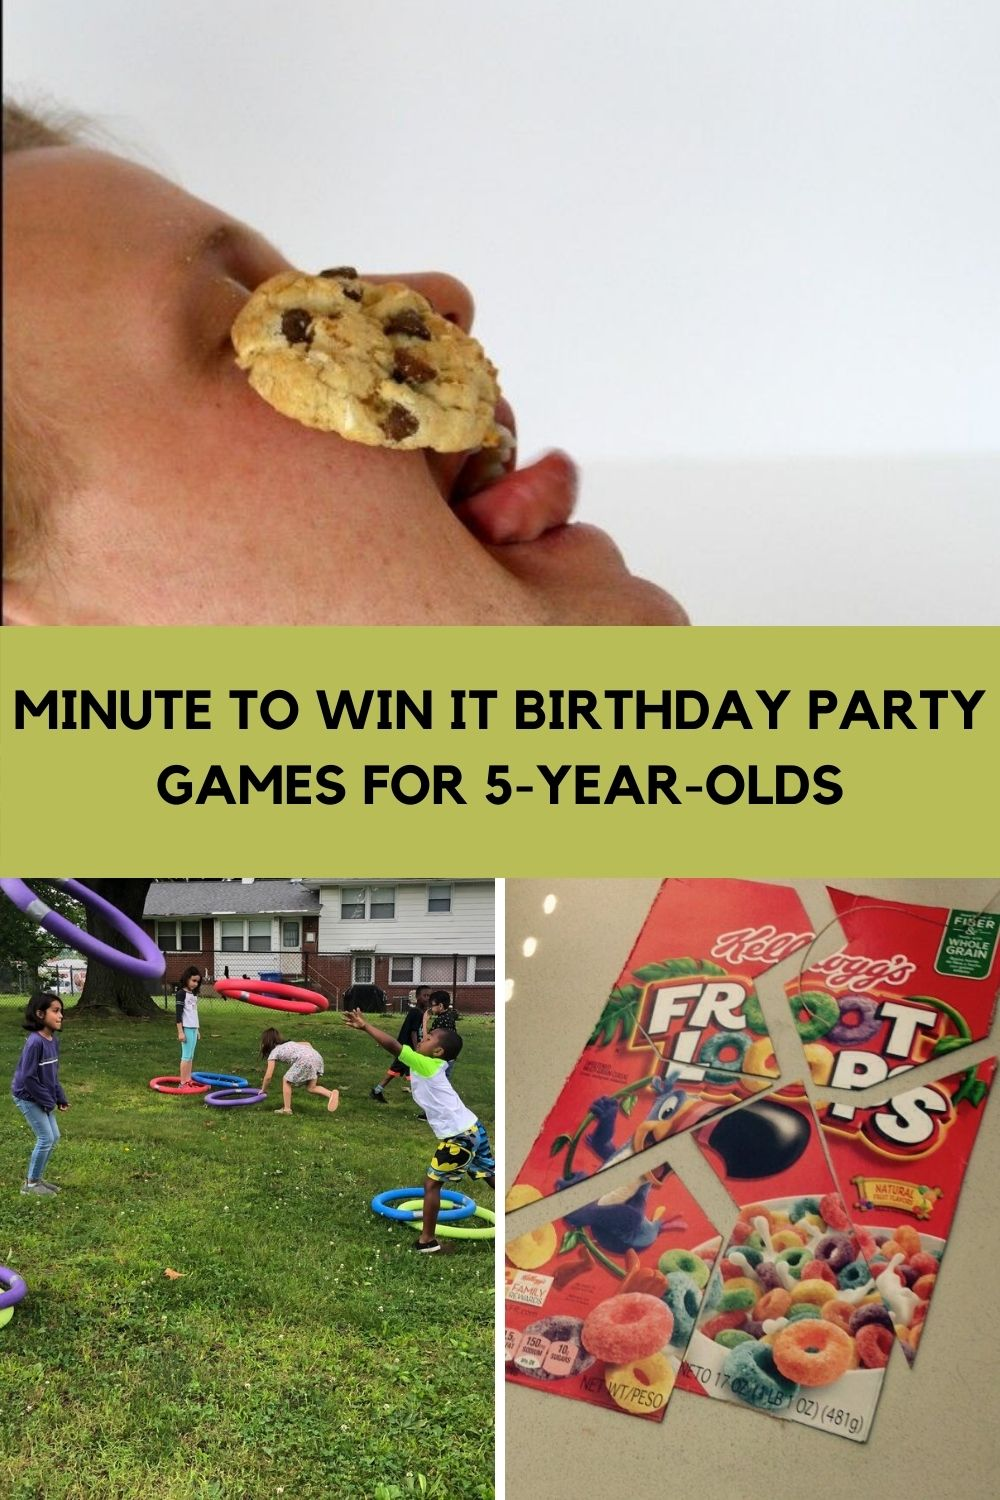 Minute To Win It Games for 5 Year Olds Birthdays